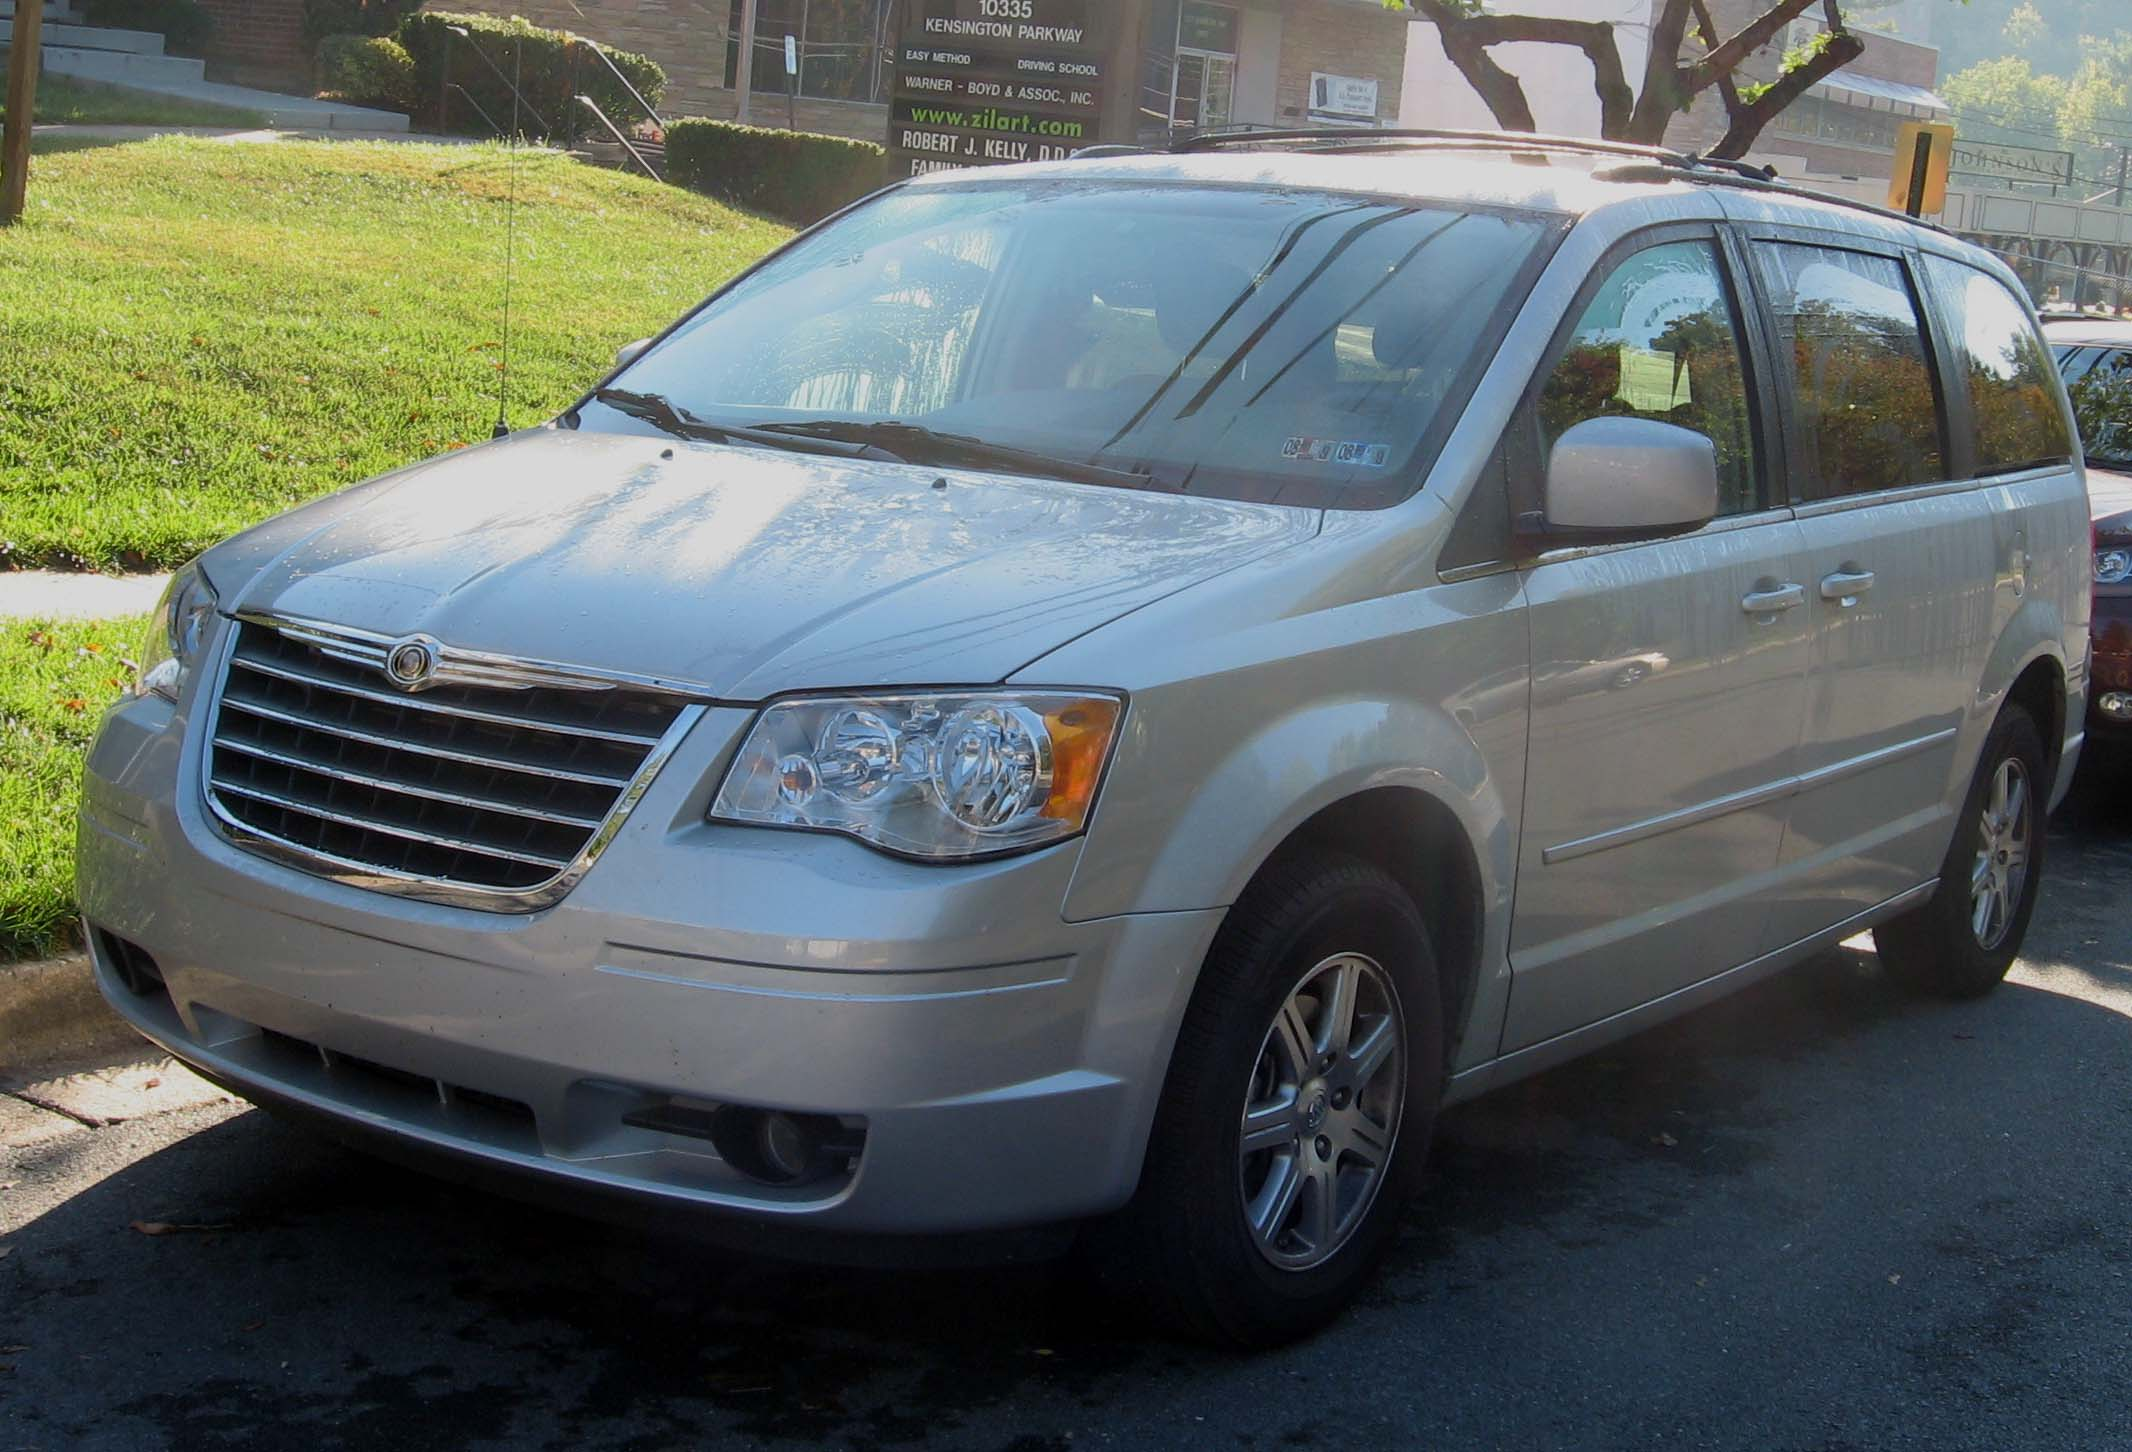 File 08 Chrysler Town and Country Wikimedia mons